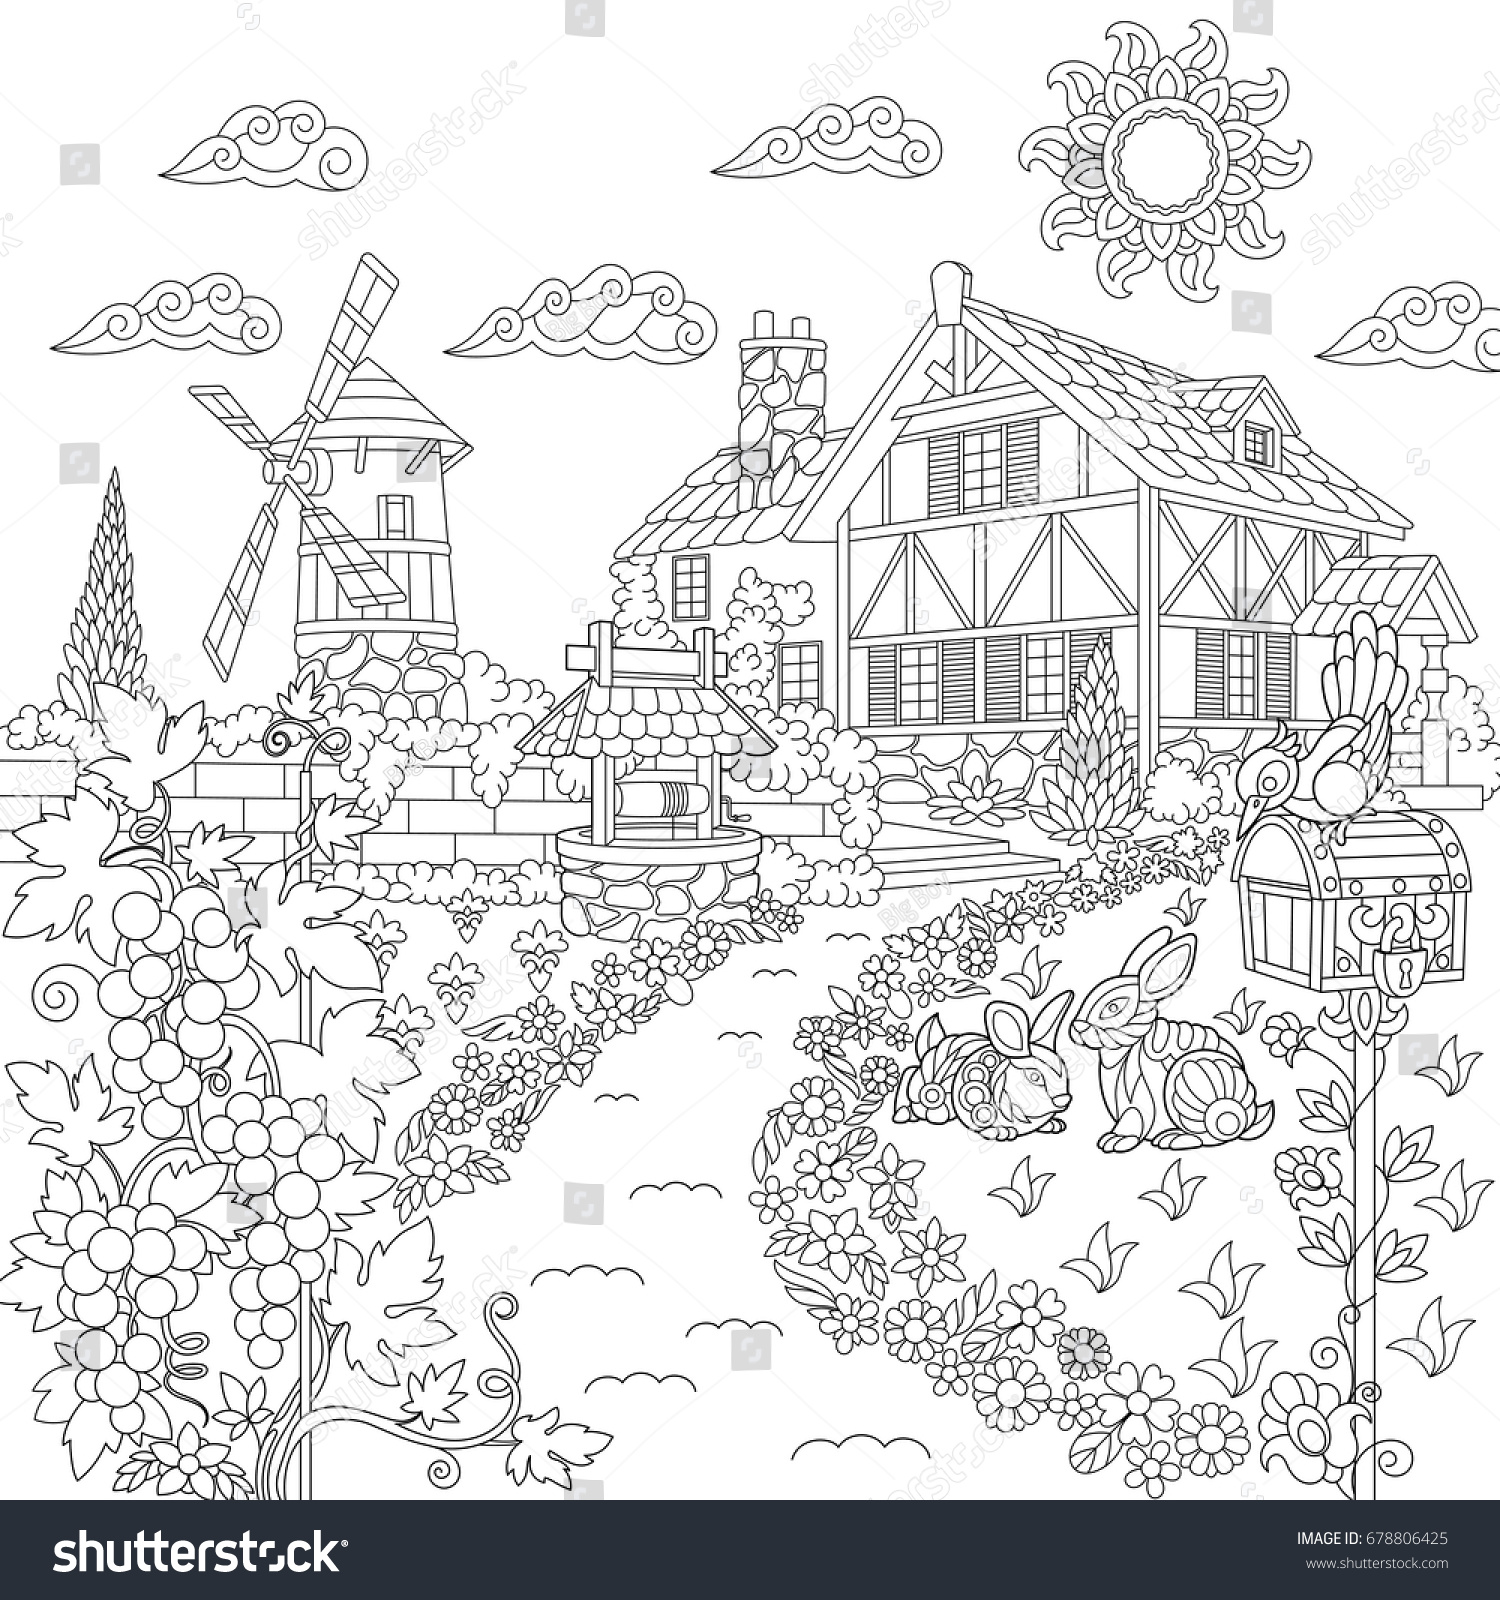 Coloring Book Page Rural Landscape Farm Stock Vector 678806425 ...